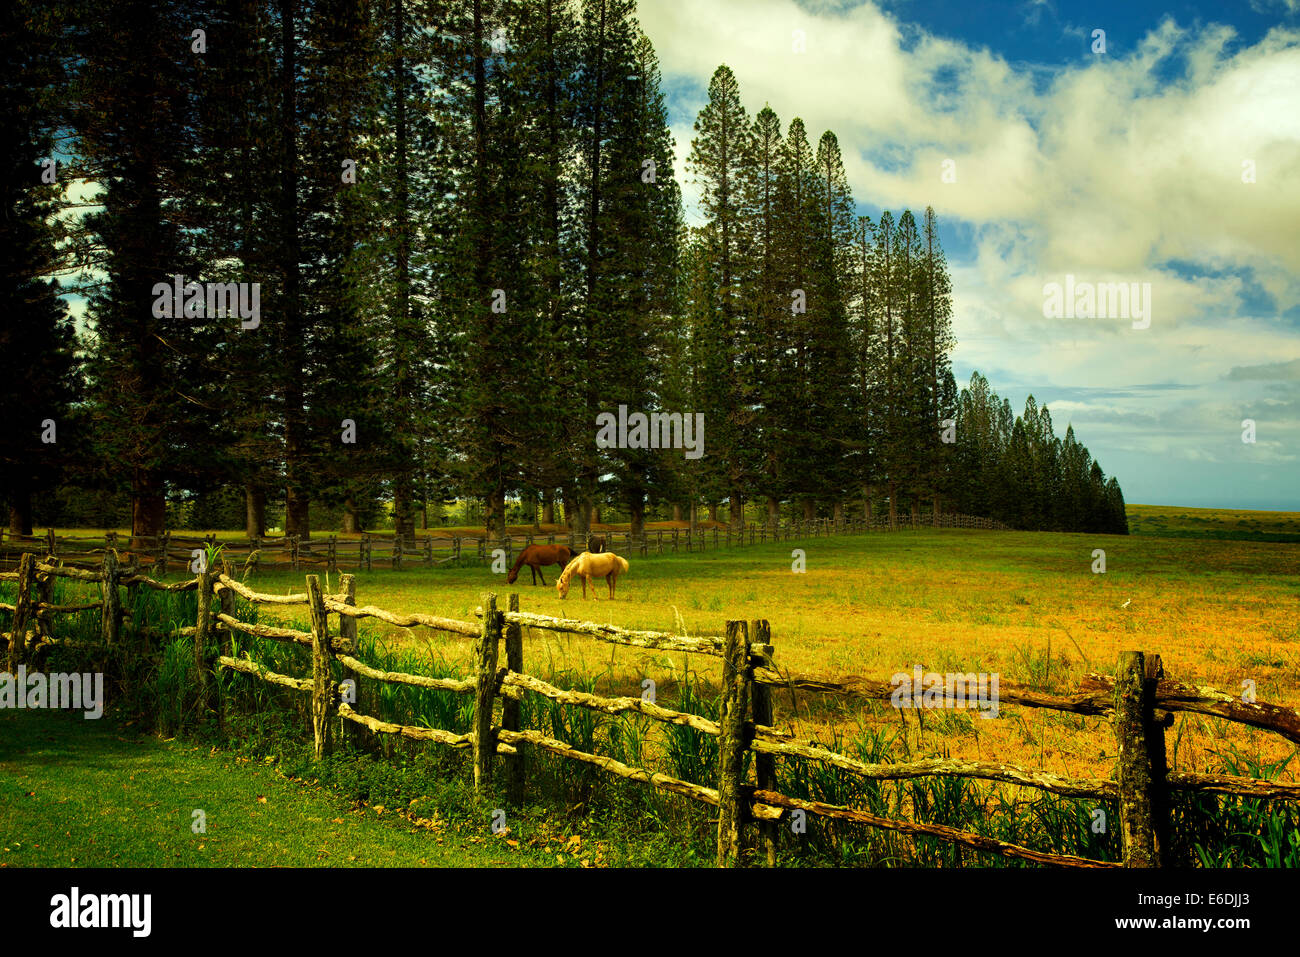 Horse in pasture with fence and Cook pines.Lanai, Hawaii - Stock Image